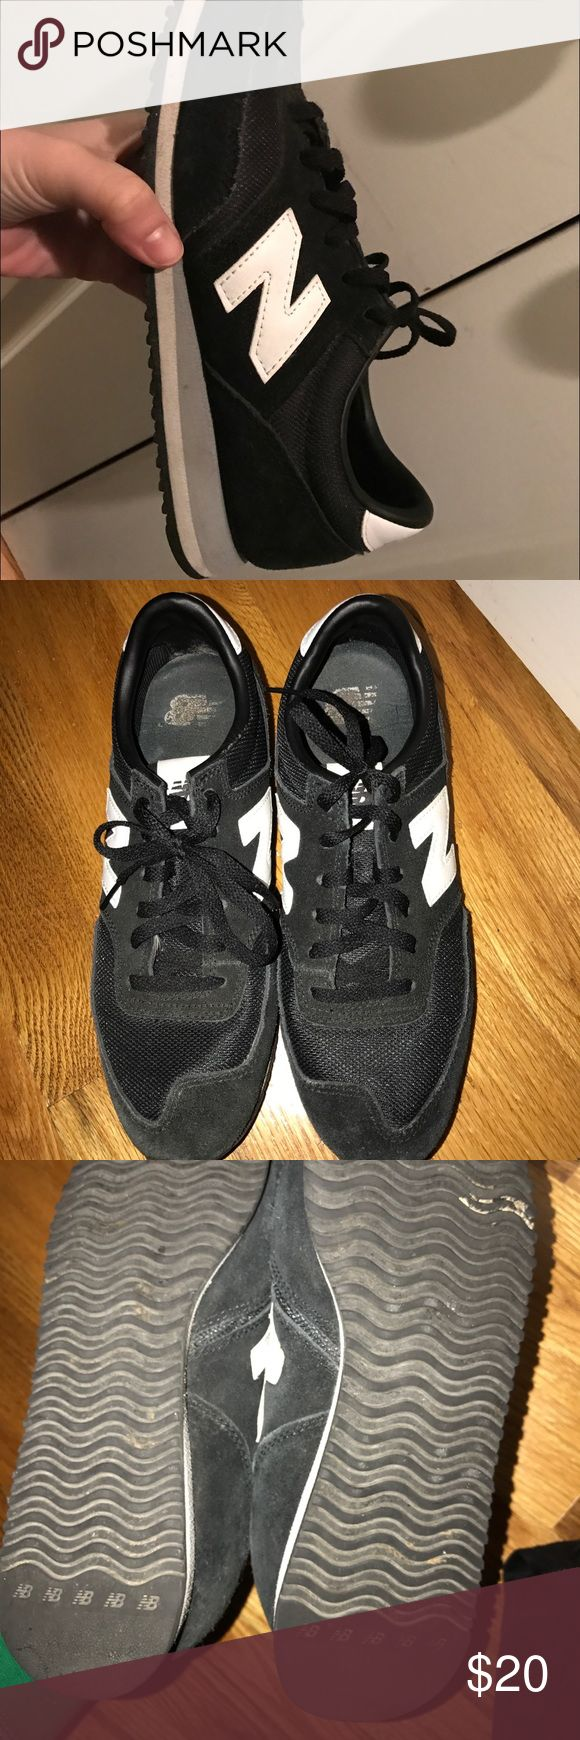 New balance shoes Used black New Balance shoes. Size 9.5 New Balance Shoes Sneakers